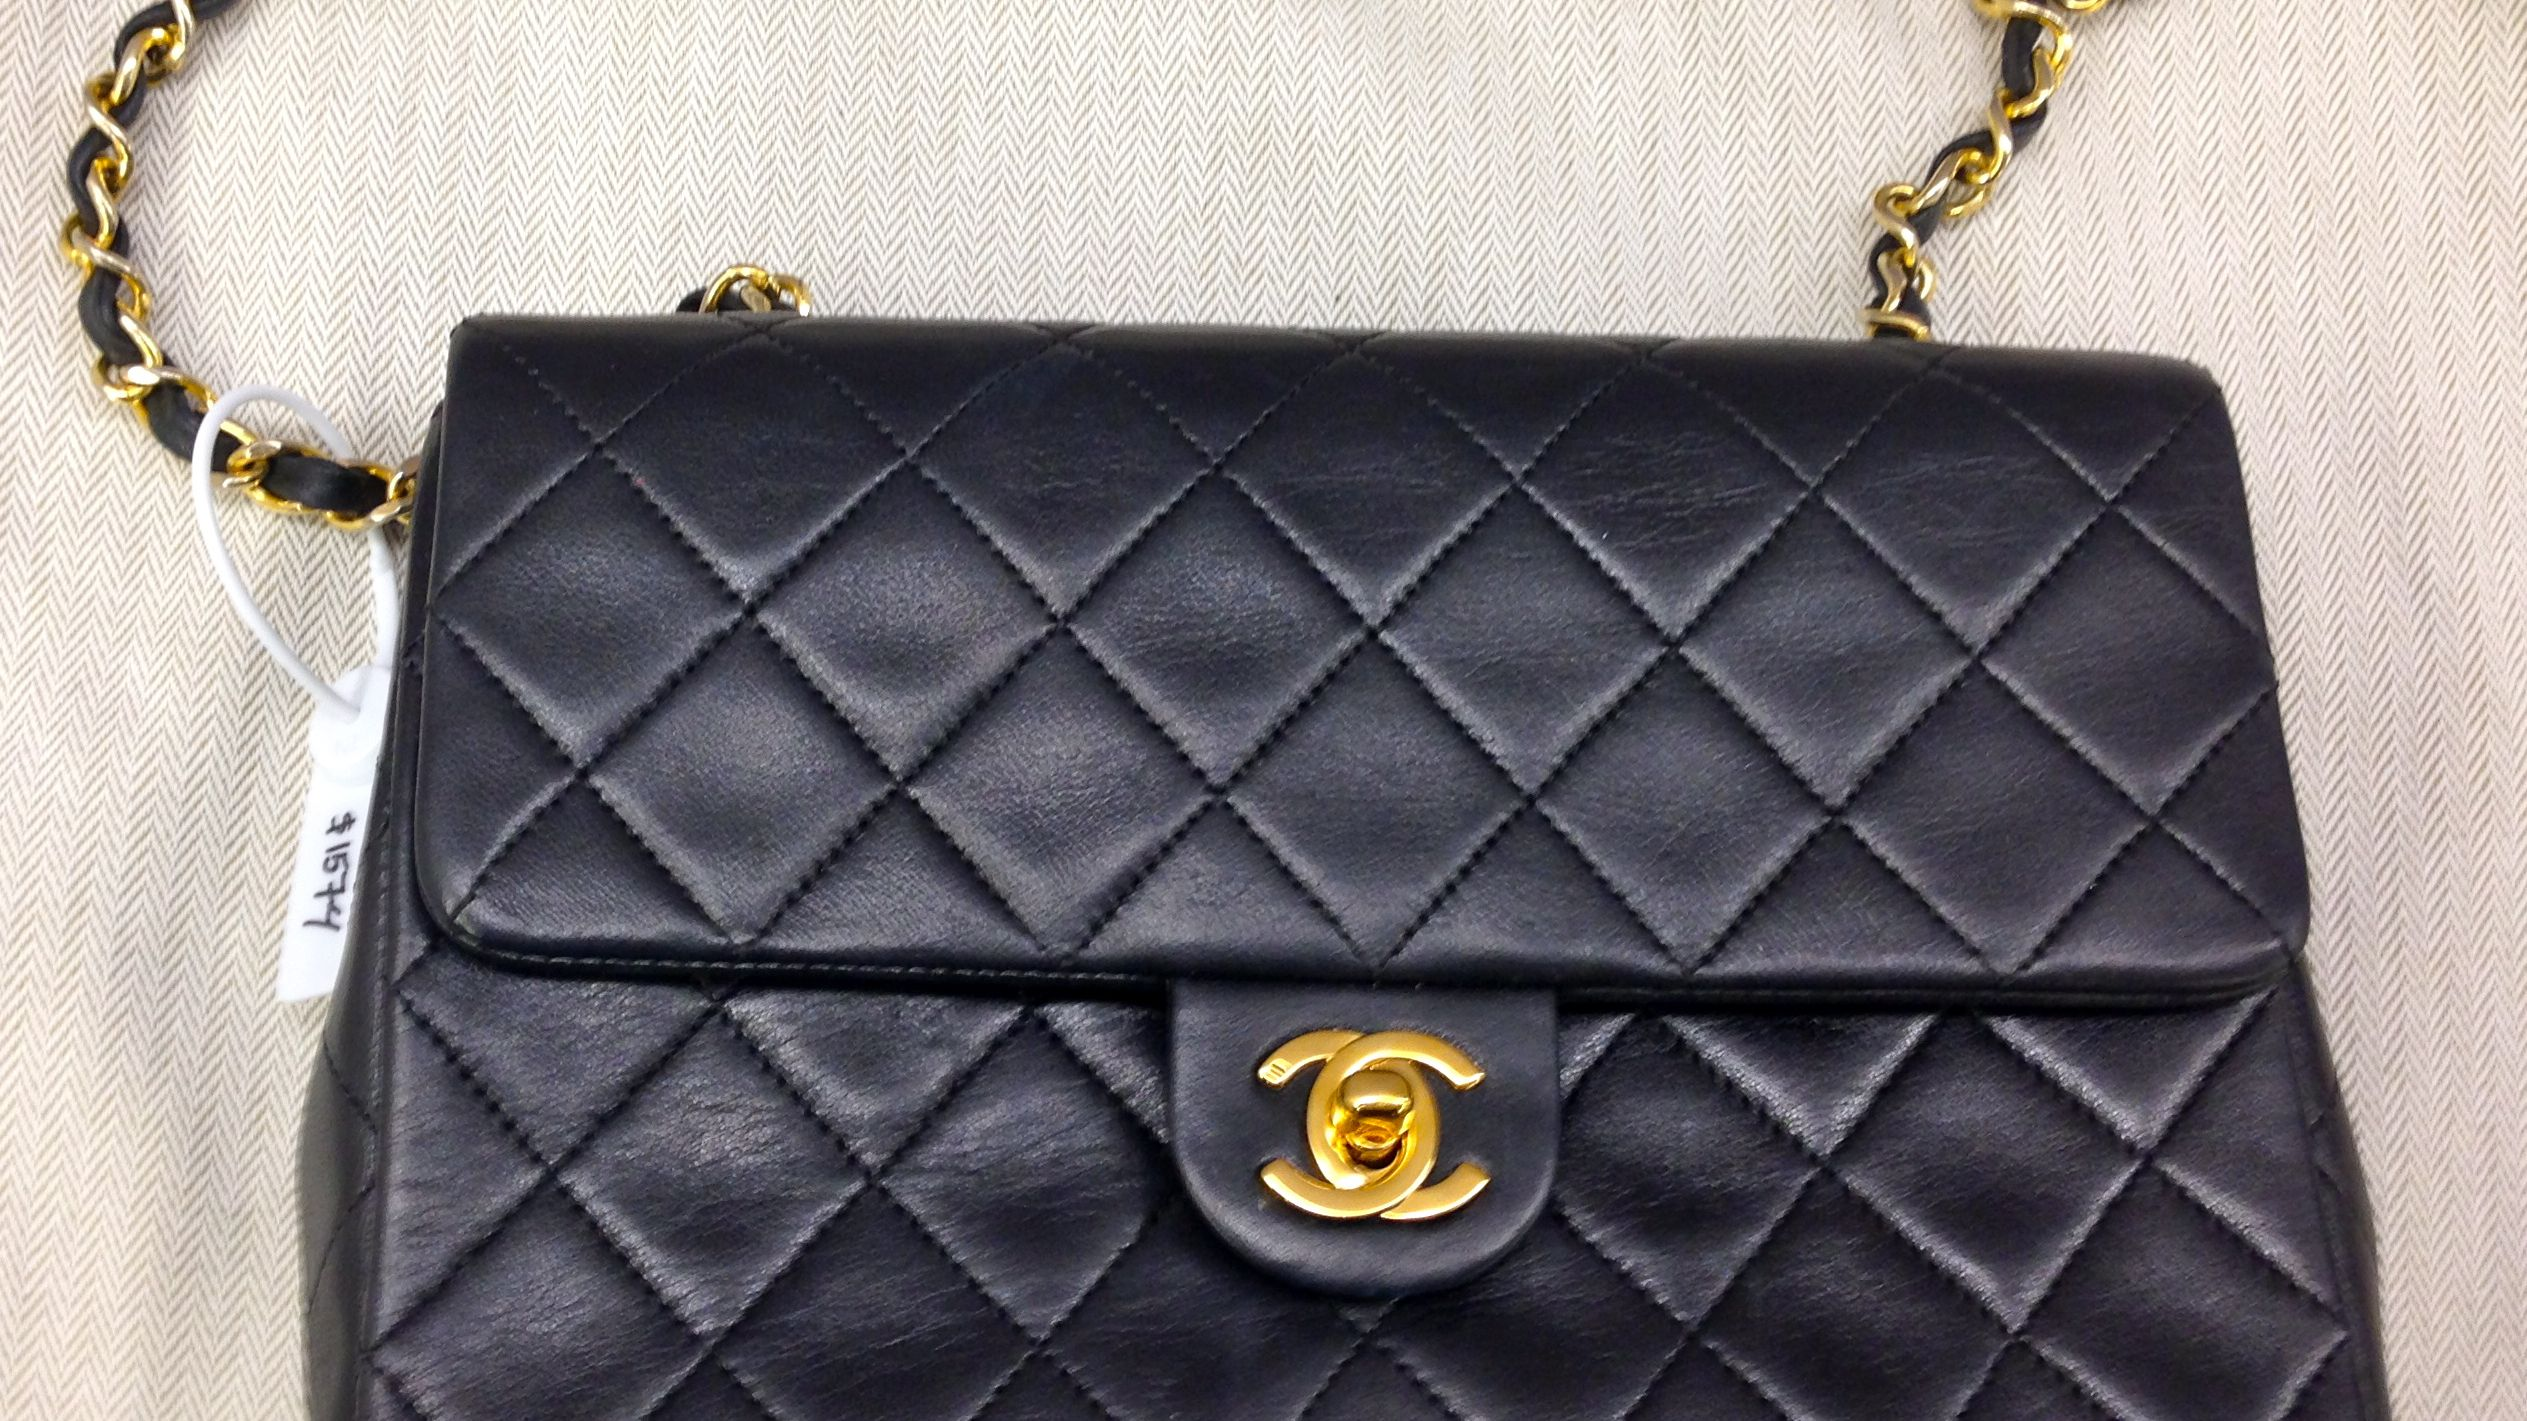 3fbeaf877e94 Chanel Handbags: How to Tell if It's Real or Fake